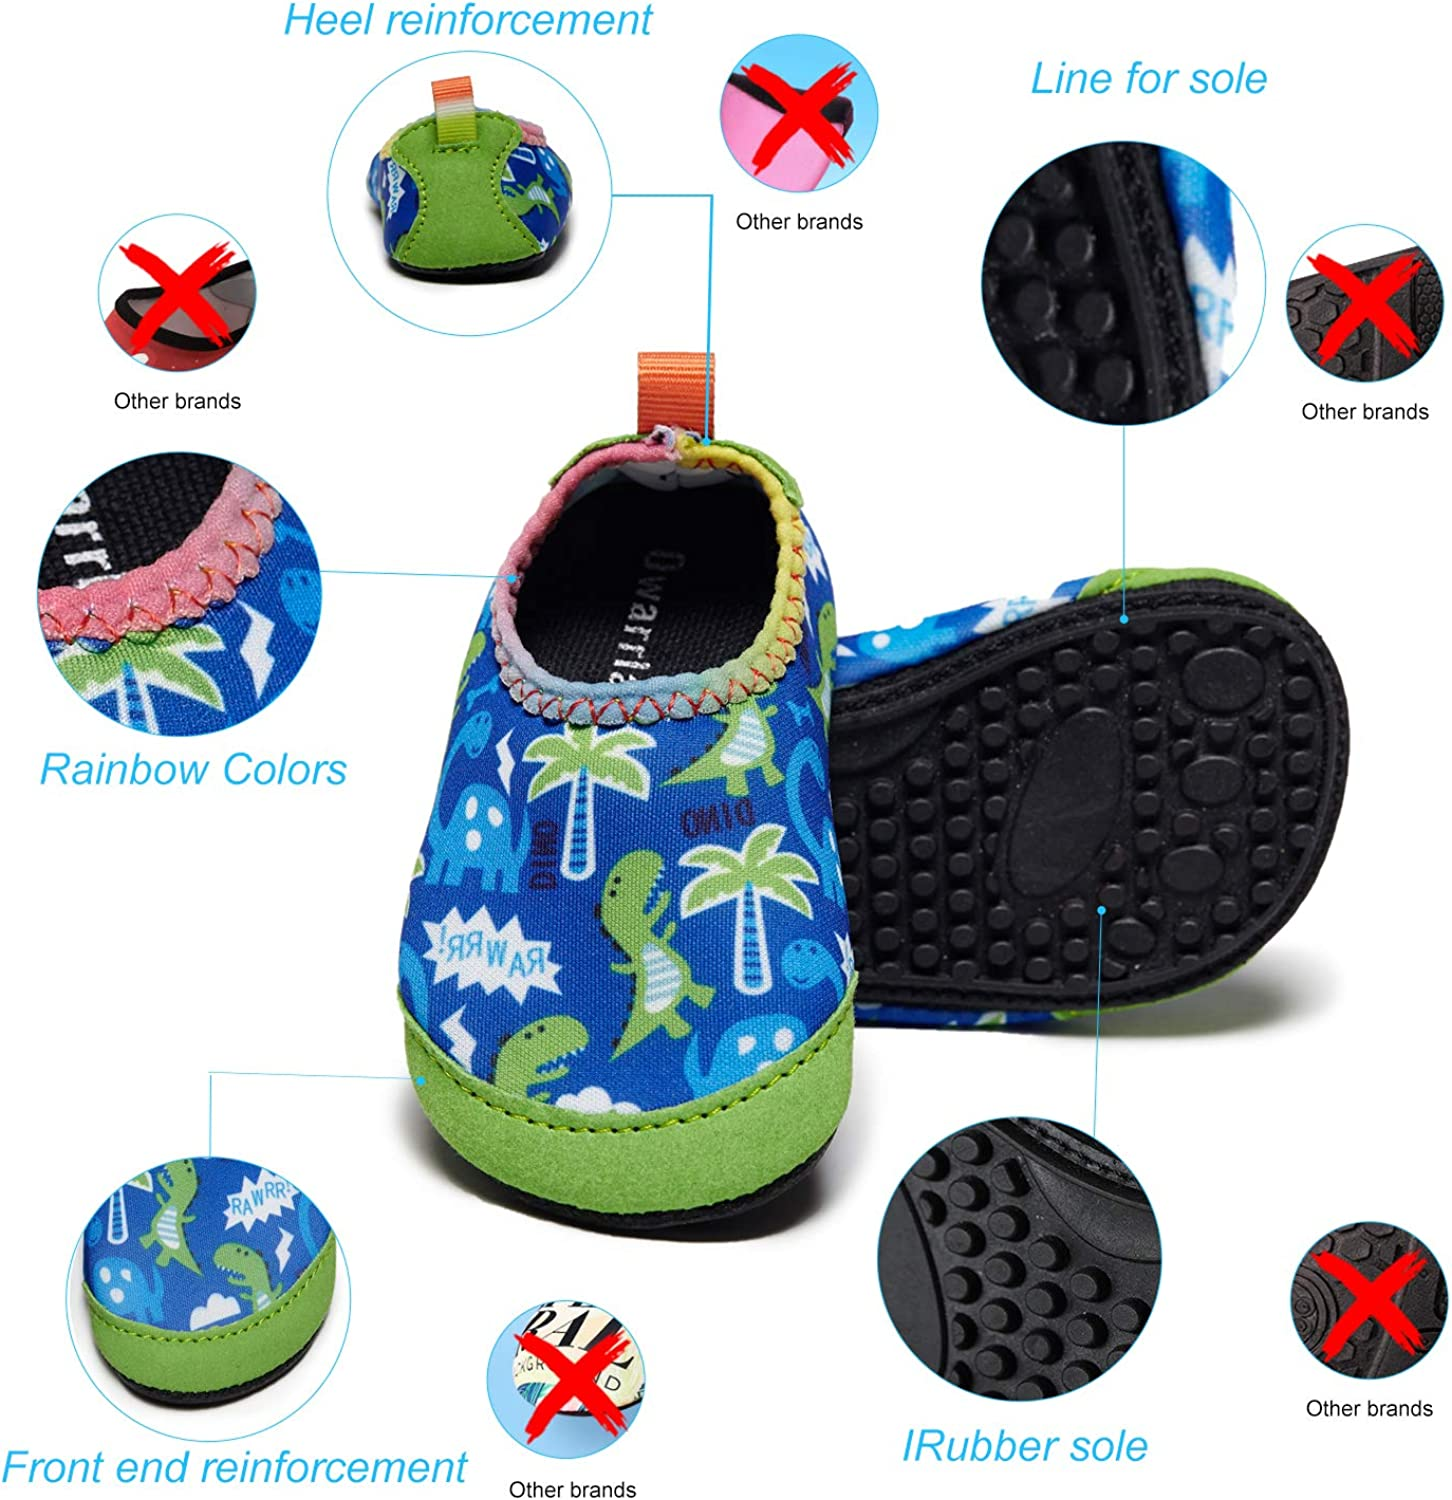 Owarrla Water Shoes Toddlers Barefoot Quick-Dry Aqua Yoga Socks Slip-on for Baby Kids Boys Girls